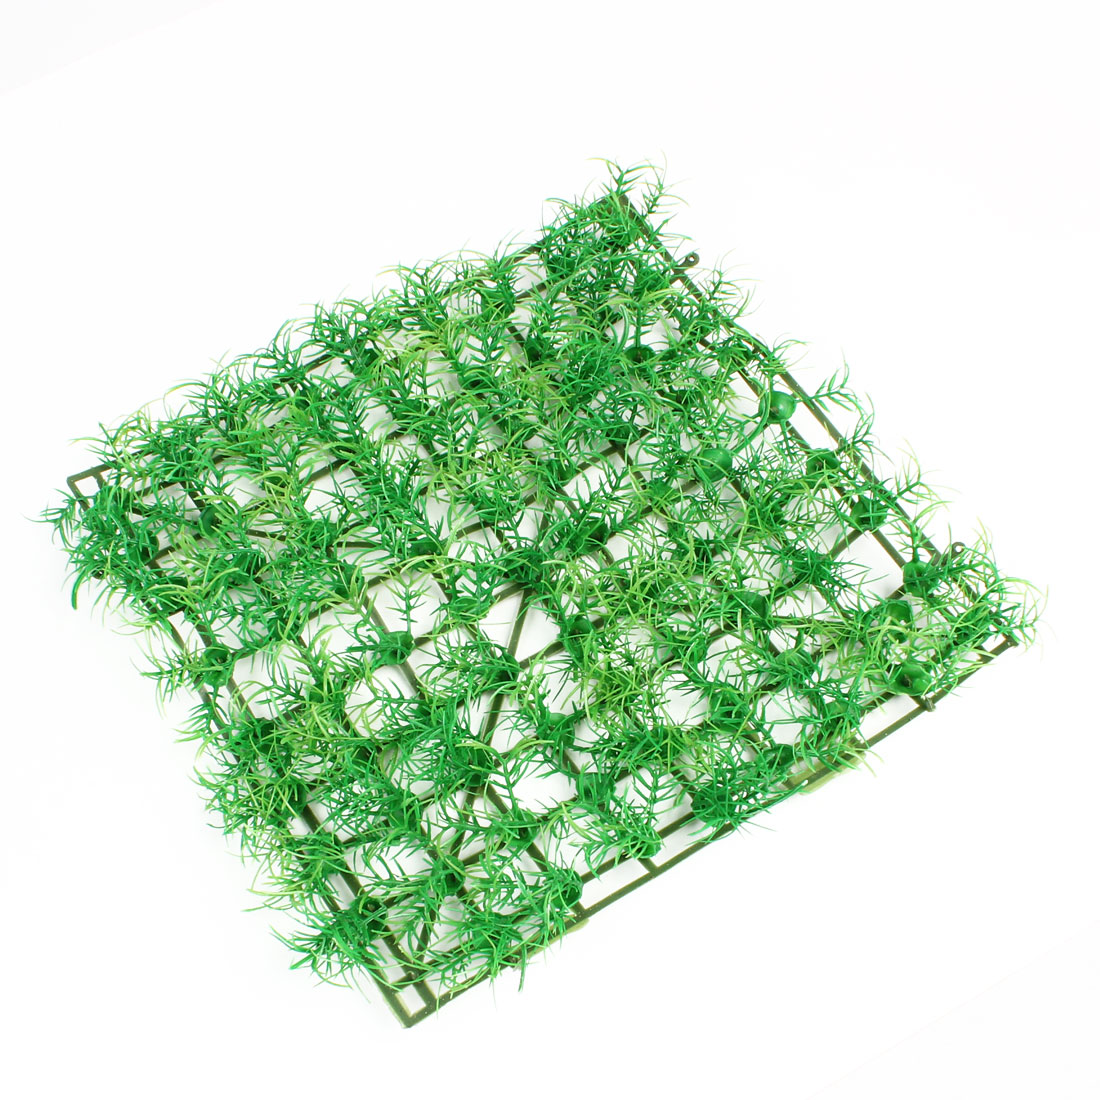 Fish Tank Aquarium Square 25cm x 25cm Plastic Green Faux Grass Lawn Ornament